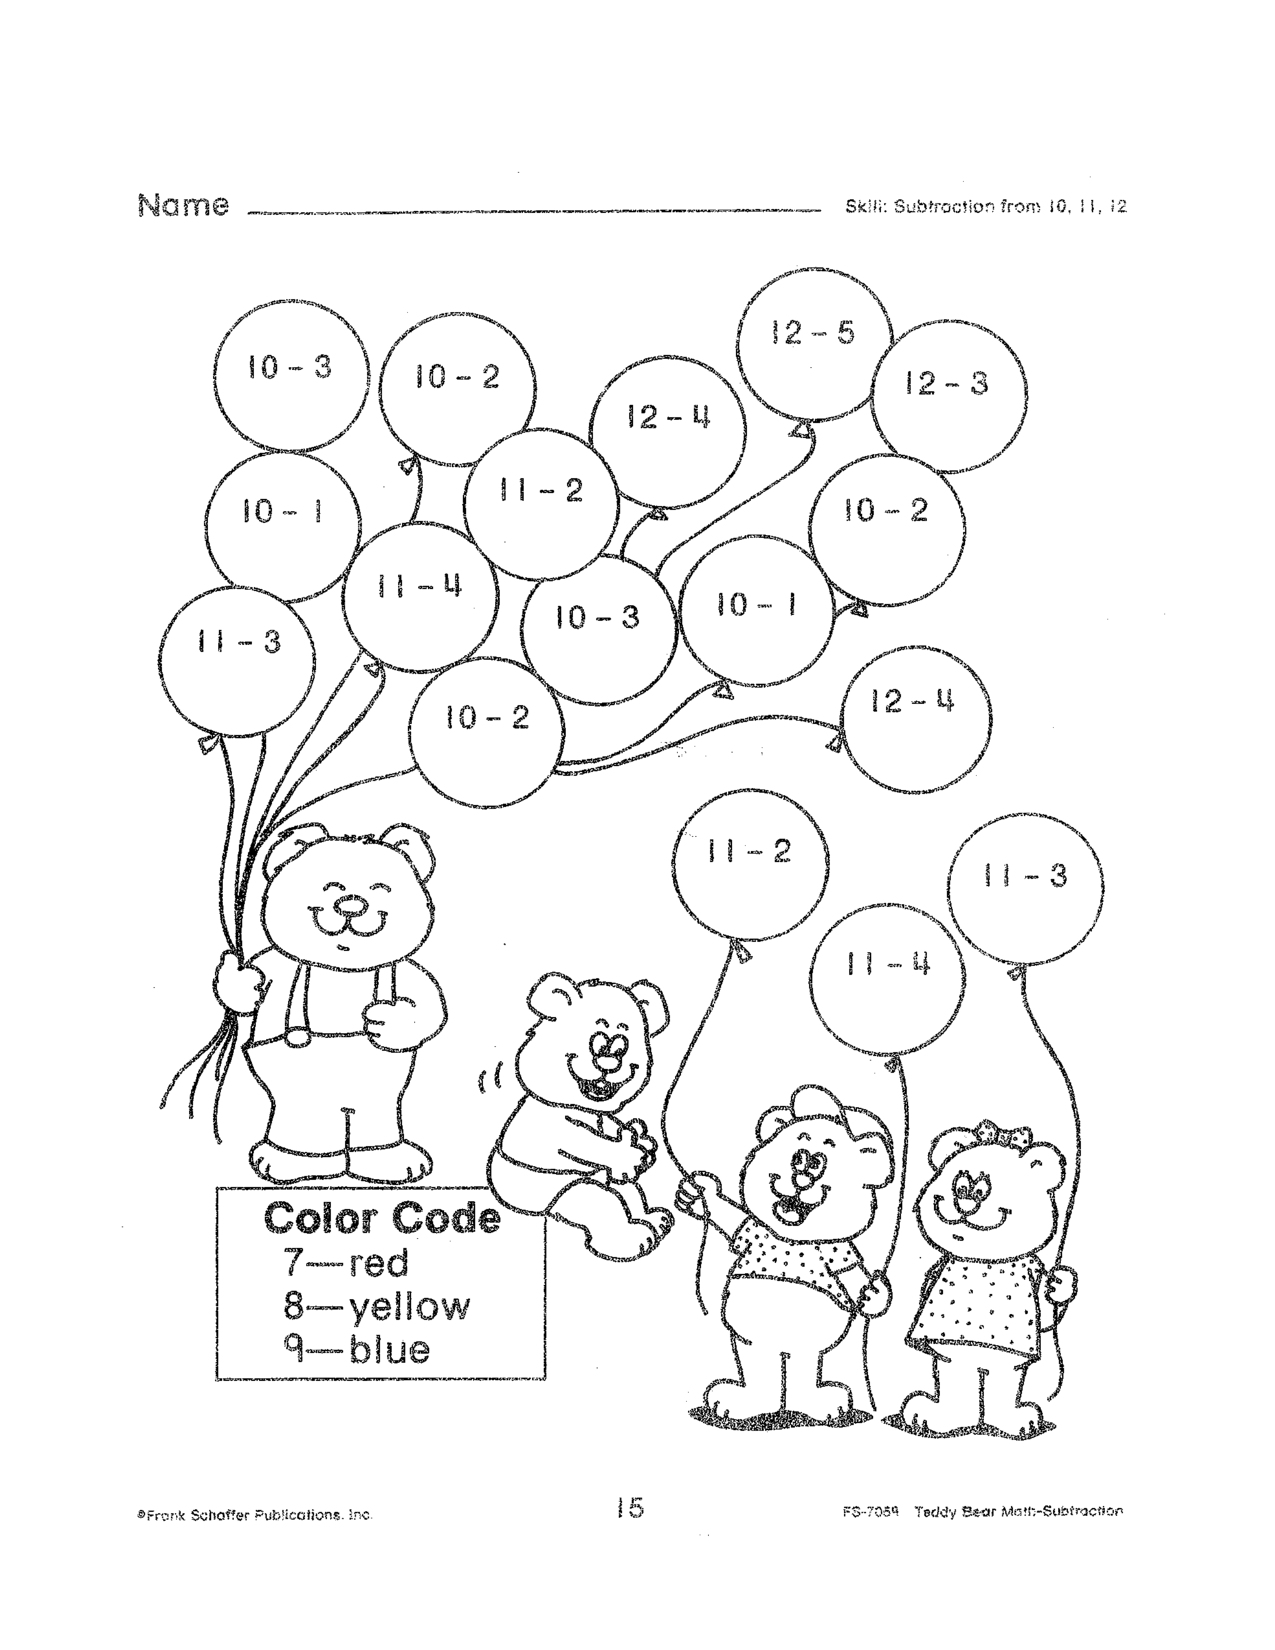 Worksheet Printable 2nd Grade Math Worksheets free grade 2 math worksheets fireyourmentor printable 5 best images of 2